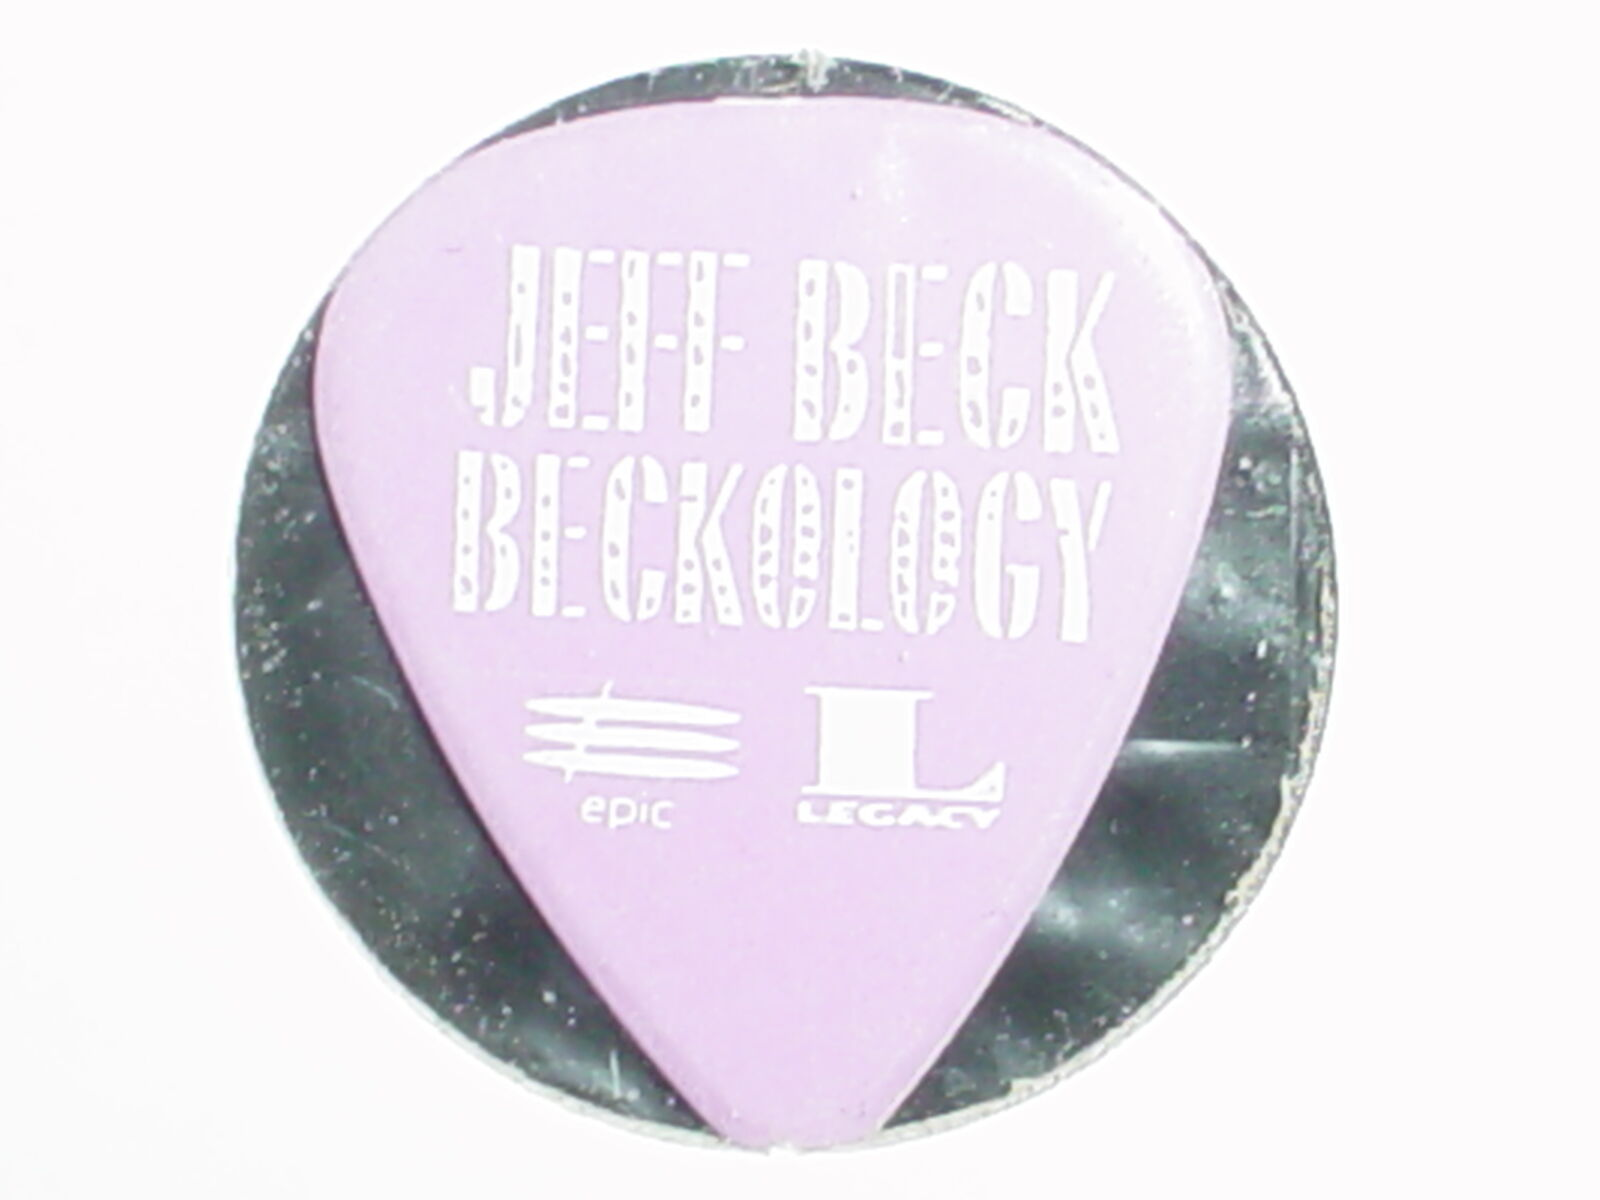 JEFF BECK Beckology Logo Legendarly Guitarist Old Promo RaRe 1991 GUITAR PICK